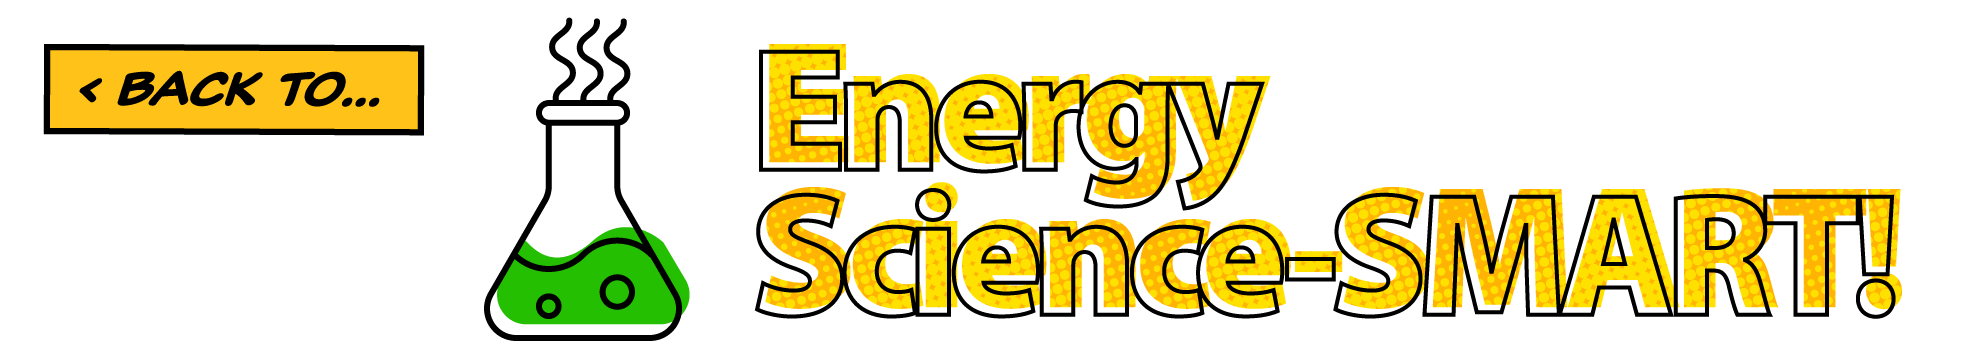 Back to… Energy Science-SMART!